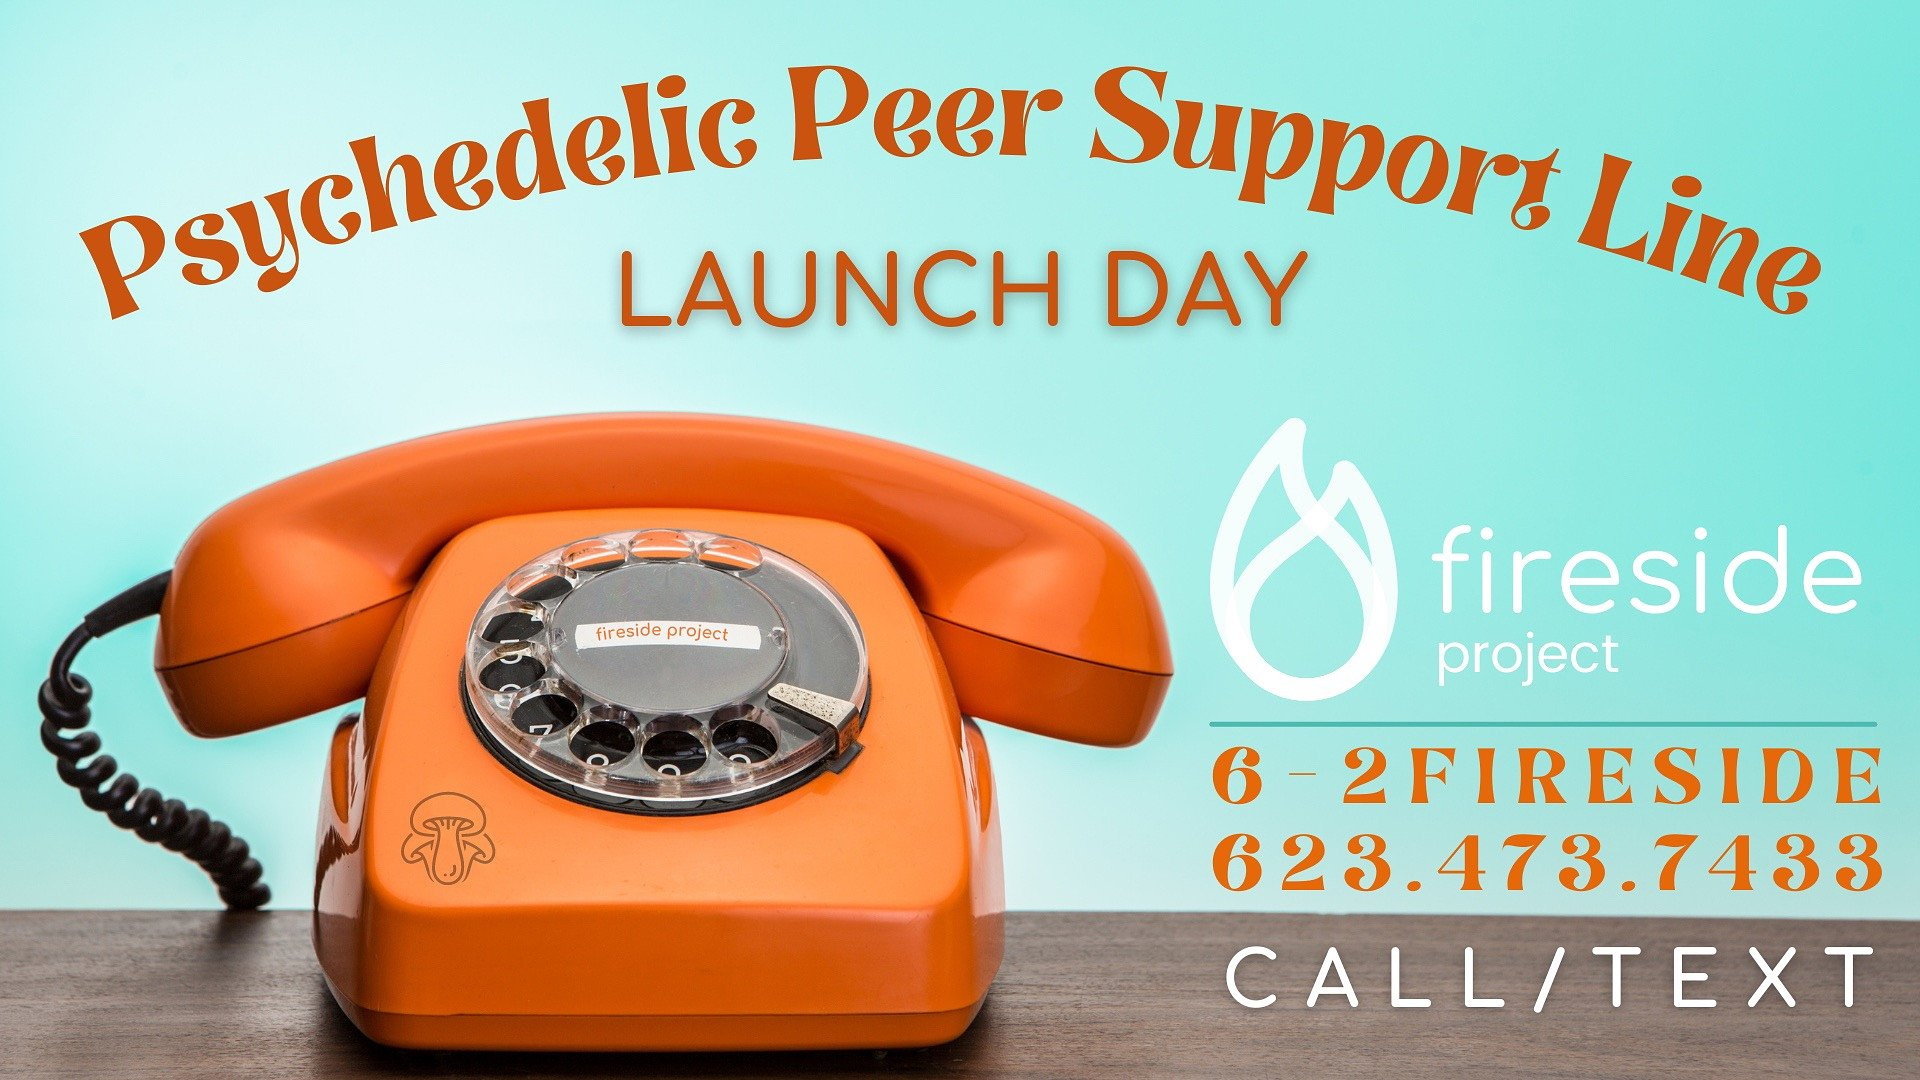 Fireside Project's Psychedelic Peer Support Line Goes Live Today